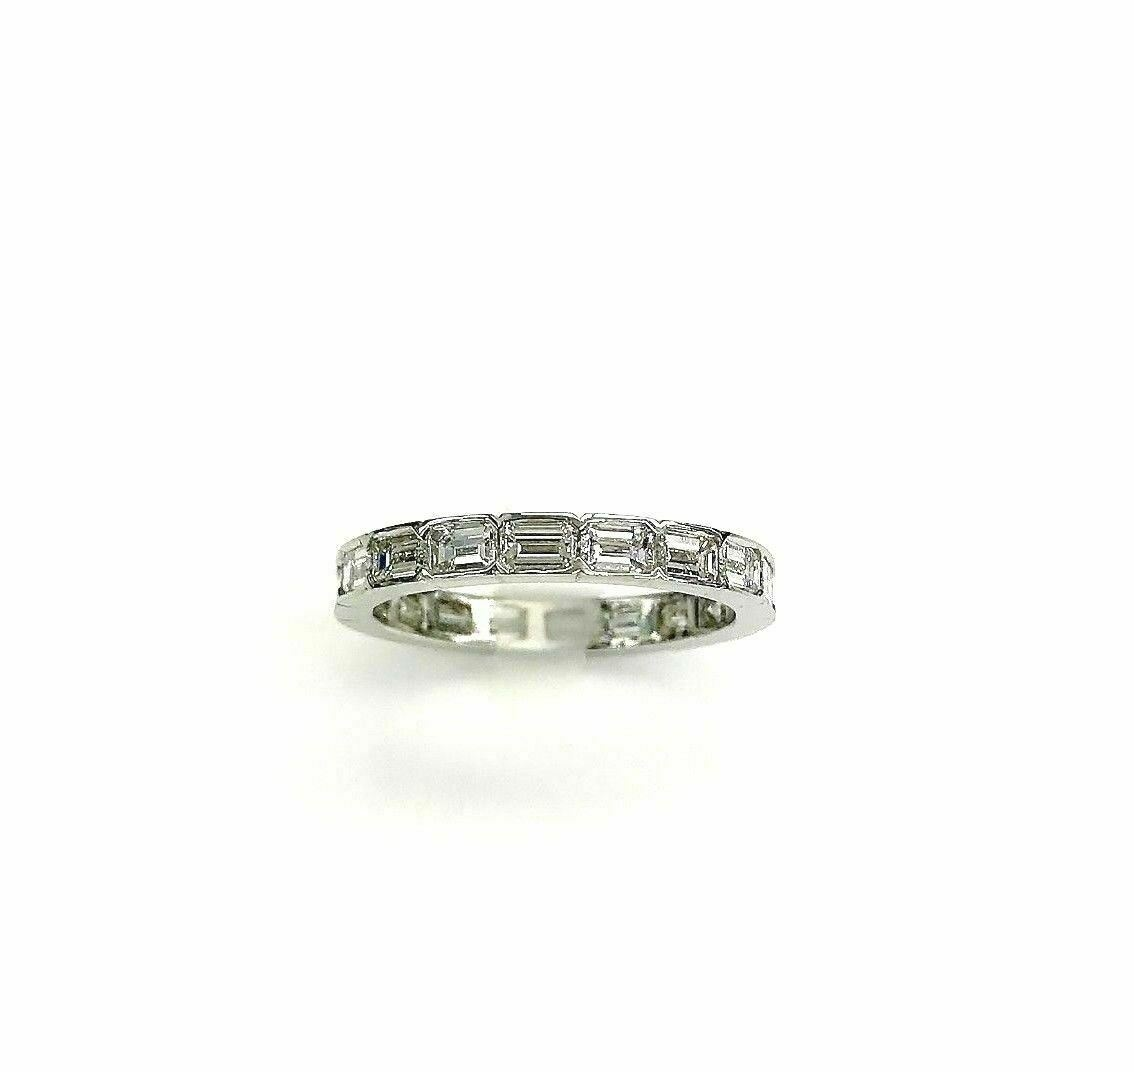 2.20Ct. Hand Made in USA Emerald Cut Diamond Eternity Band/Ring Platinum E-F VS